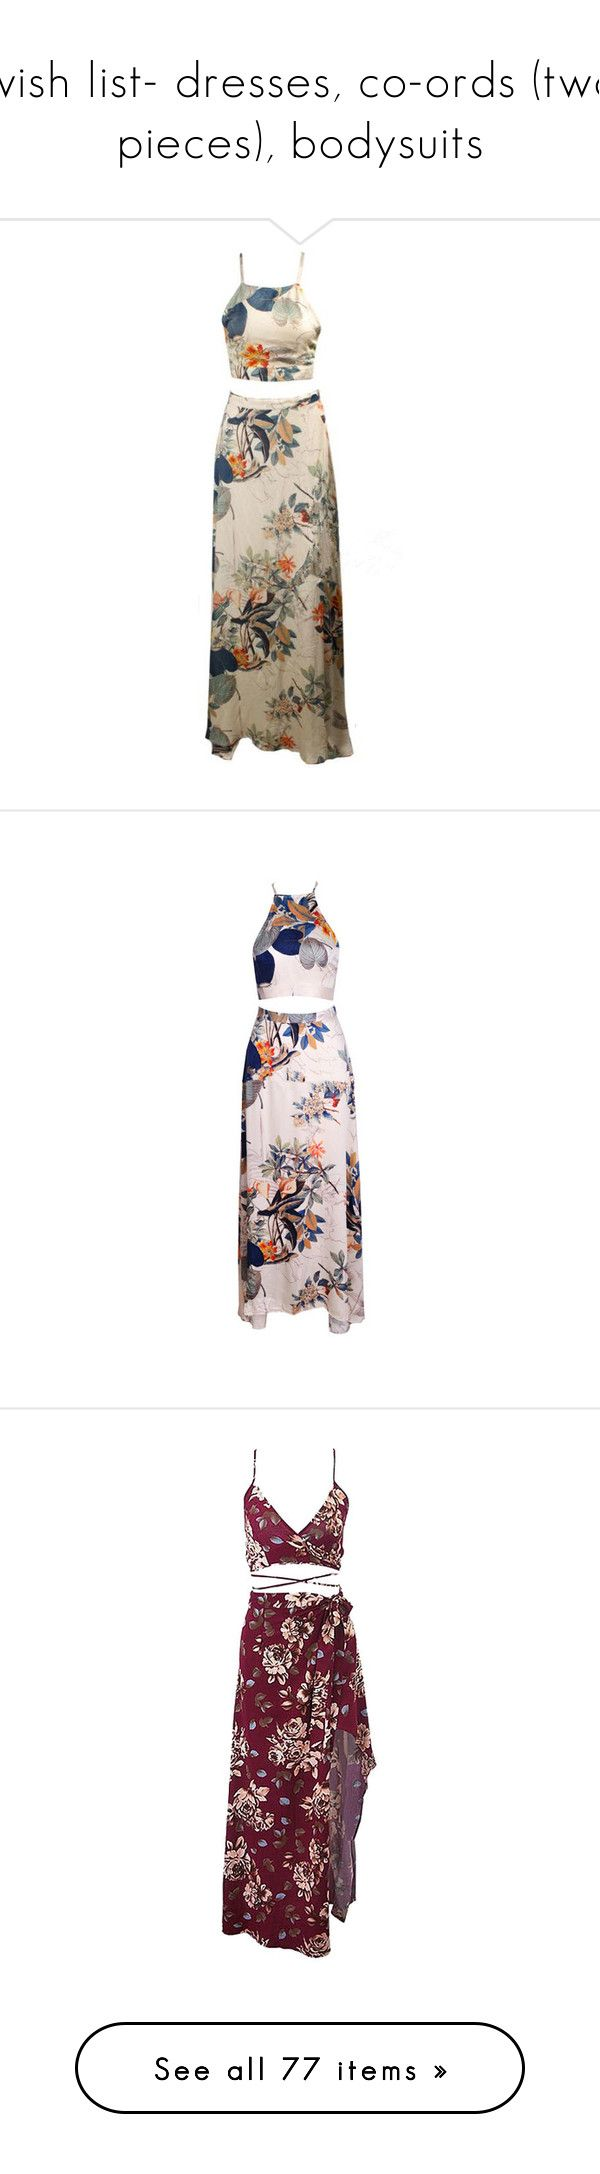 """wish list- dresses, co-ords (two pieces), bodysuits"" by kimabalee ❤ liked on Polyvore featuring skirts, multicolor, floral pattern skirt, multi color skirt, multicolor skirt, criss cross skirt, floral printed skirt, dresses, two piece and two piece set"